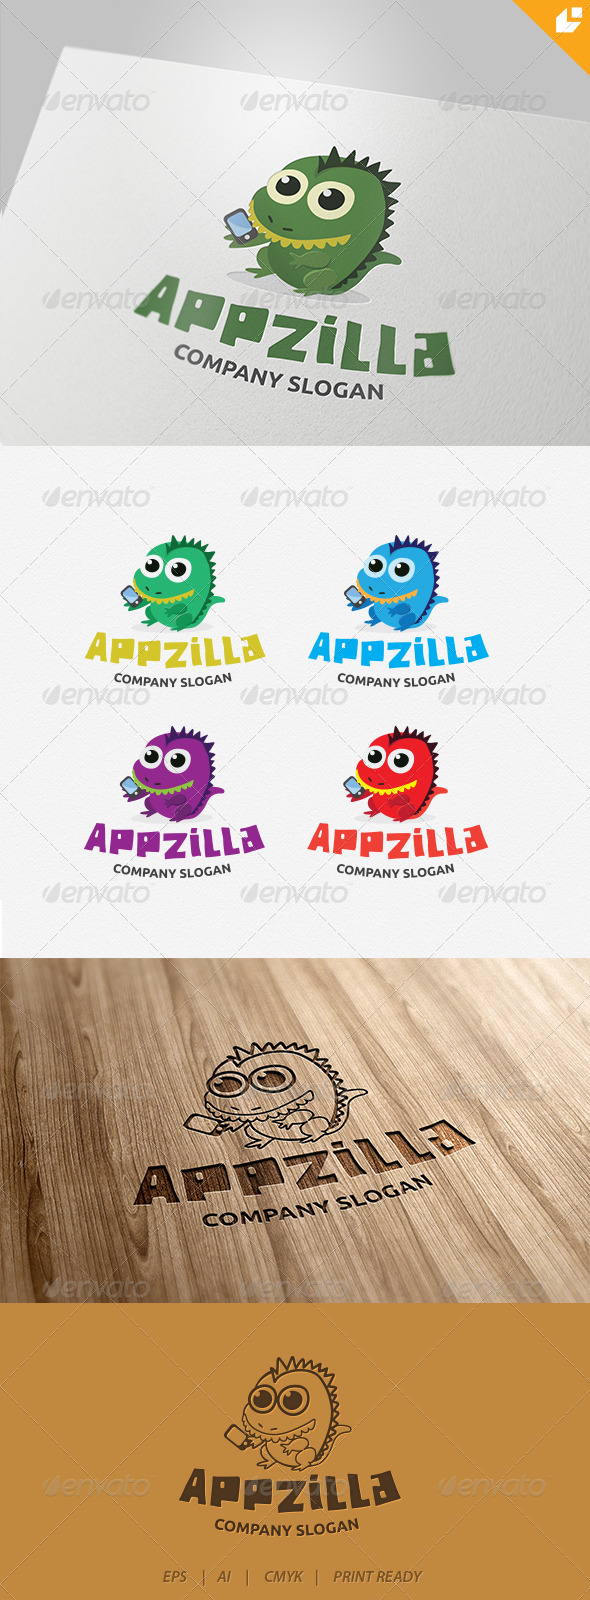 GraphicRiver Application logo v1 4343392